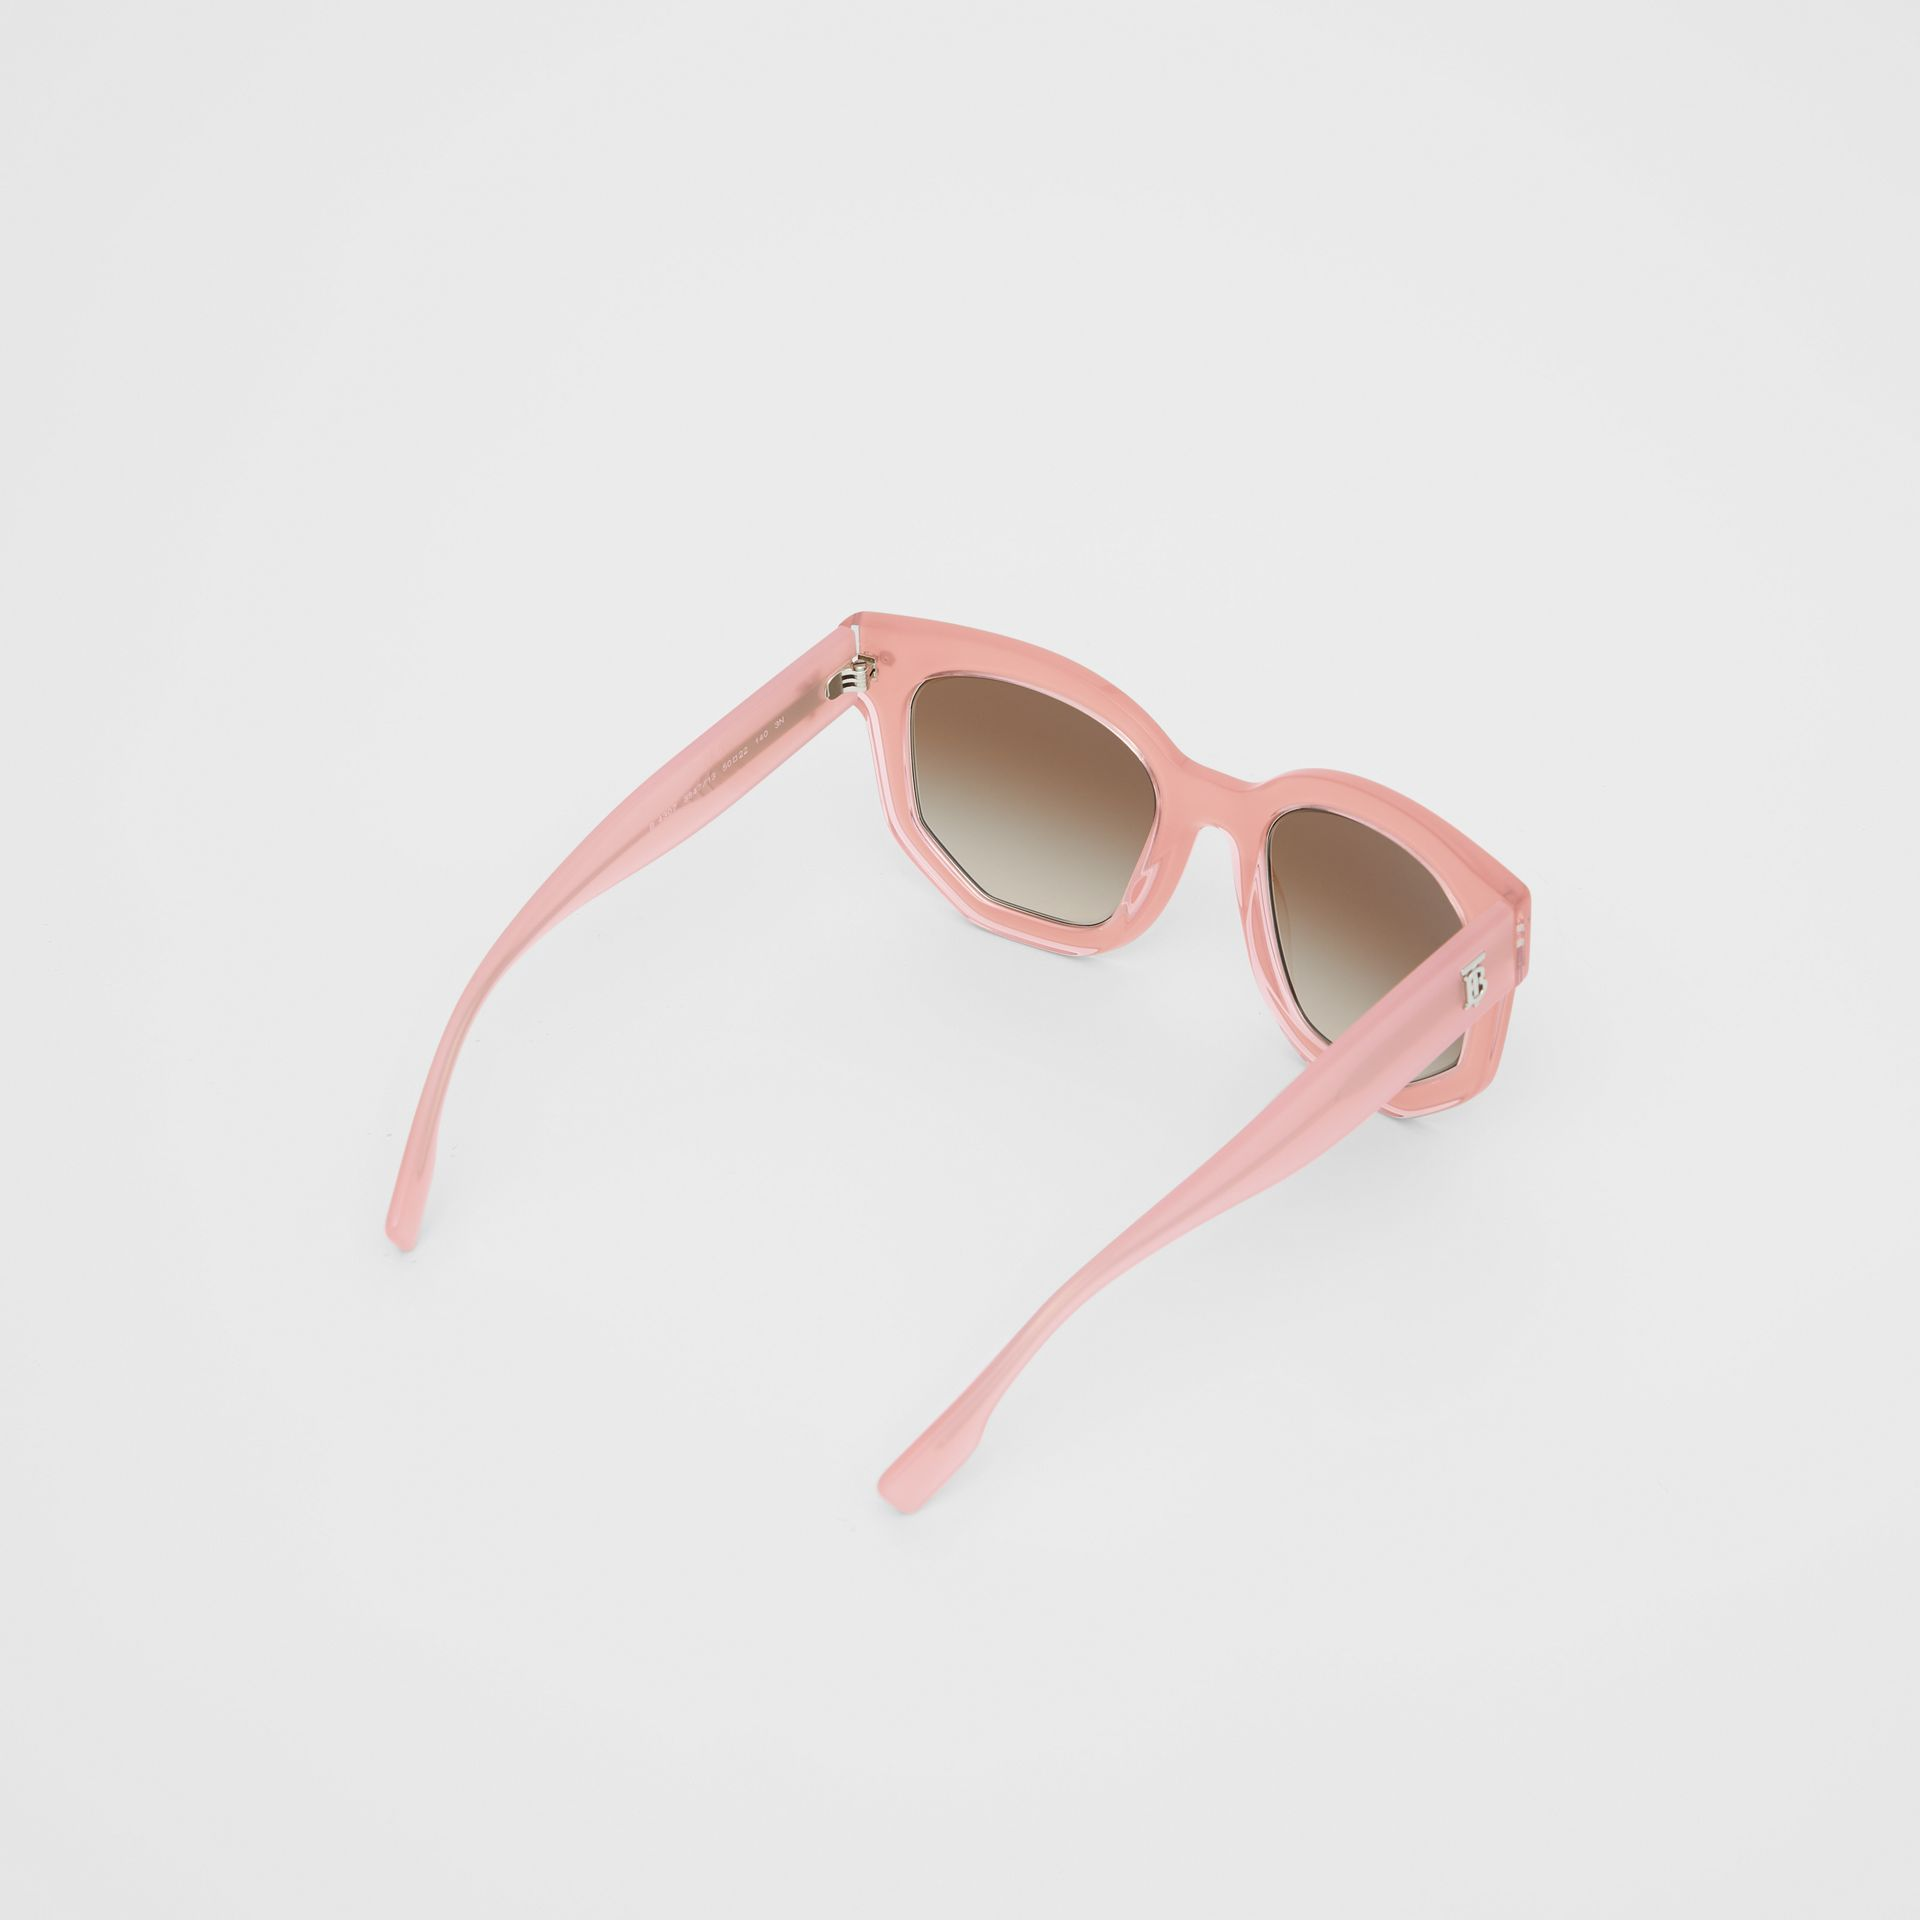 Geometric Frame Sunglasses in Pink - Women | Burberry Australia - gallery image 4